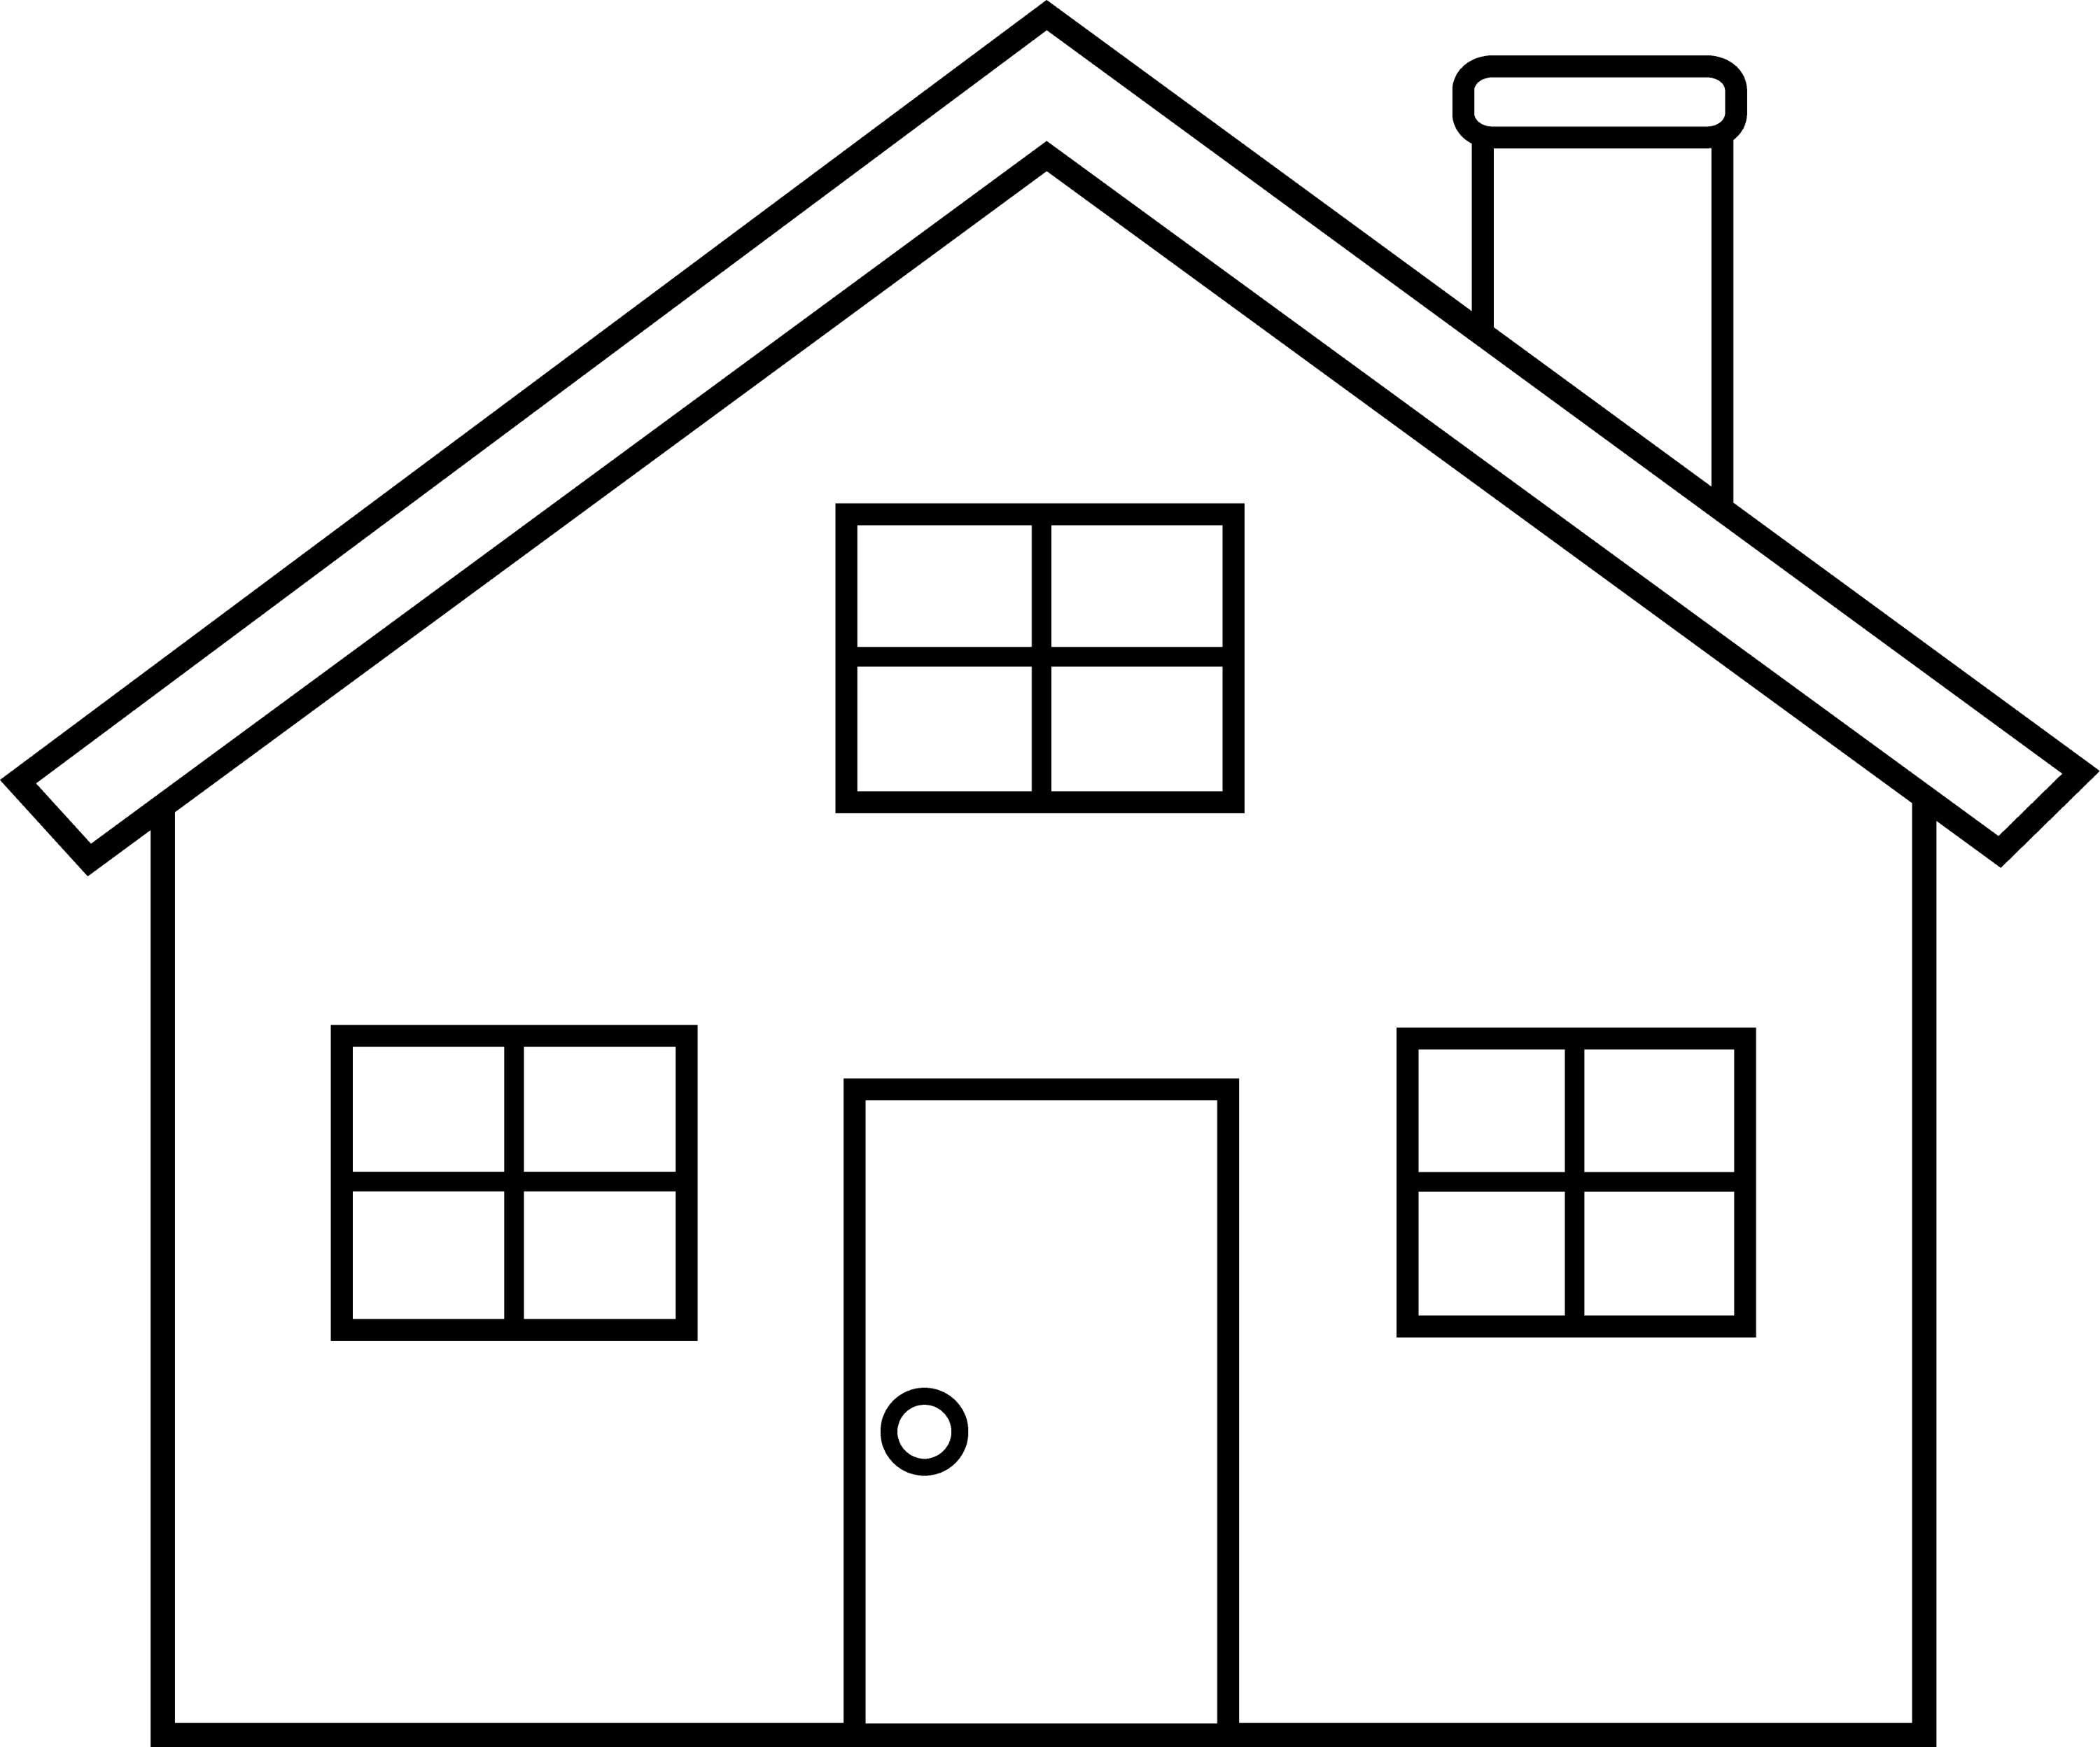 House Outline Clip Art Black and White